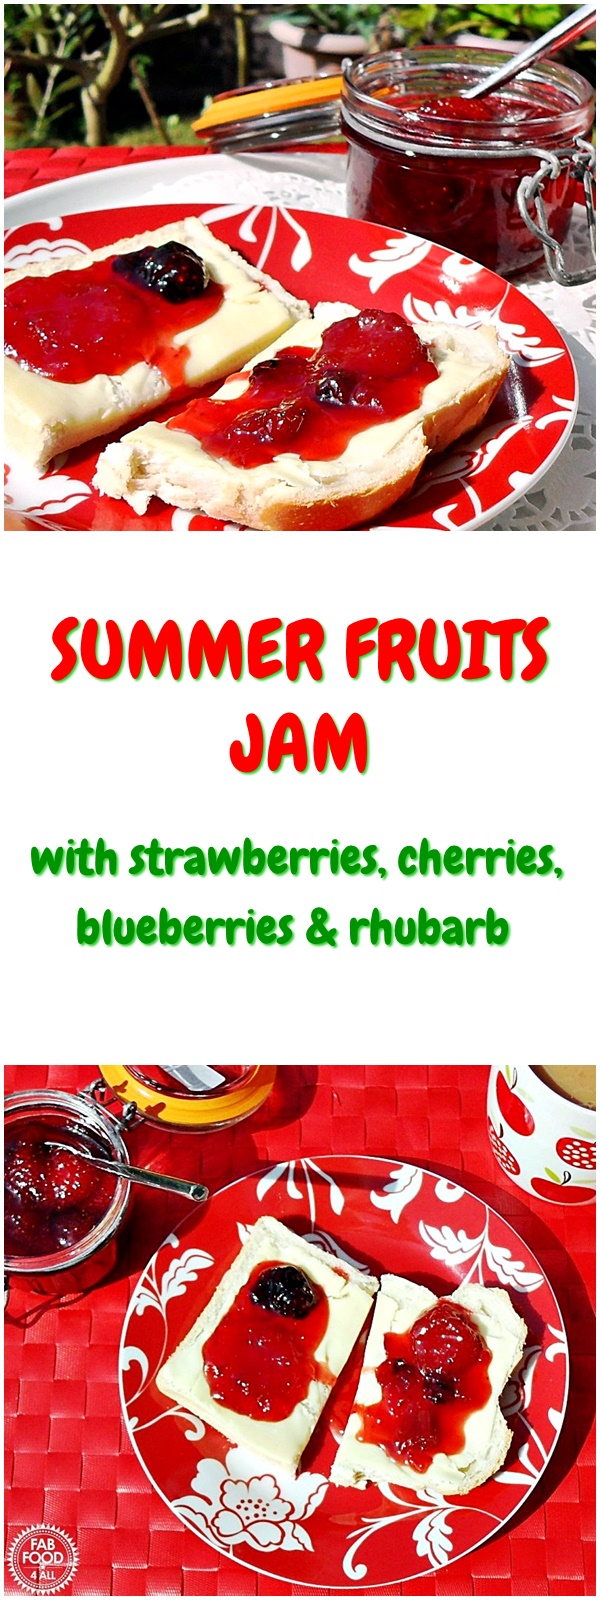 Summer Fruits Jam - Fab Food 4 All